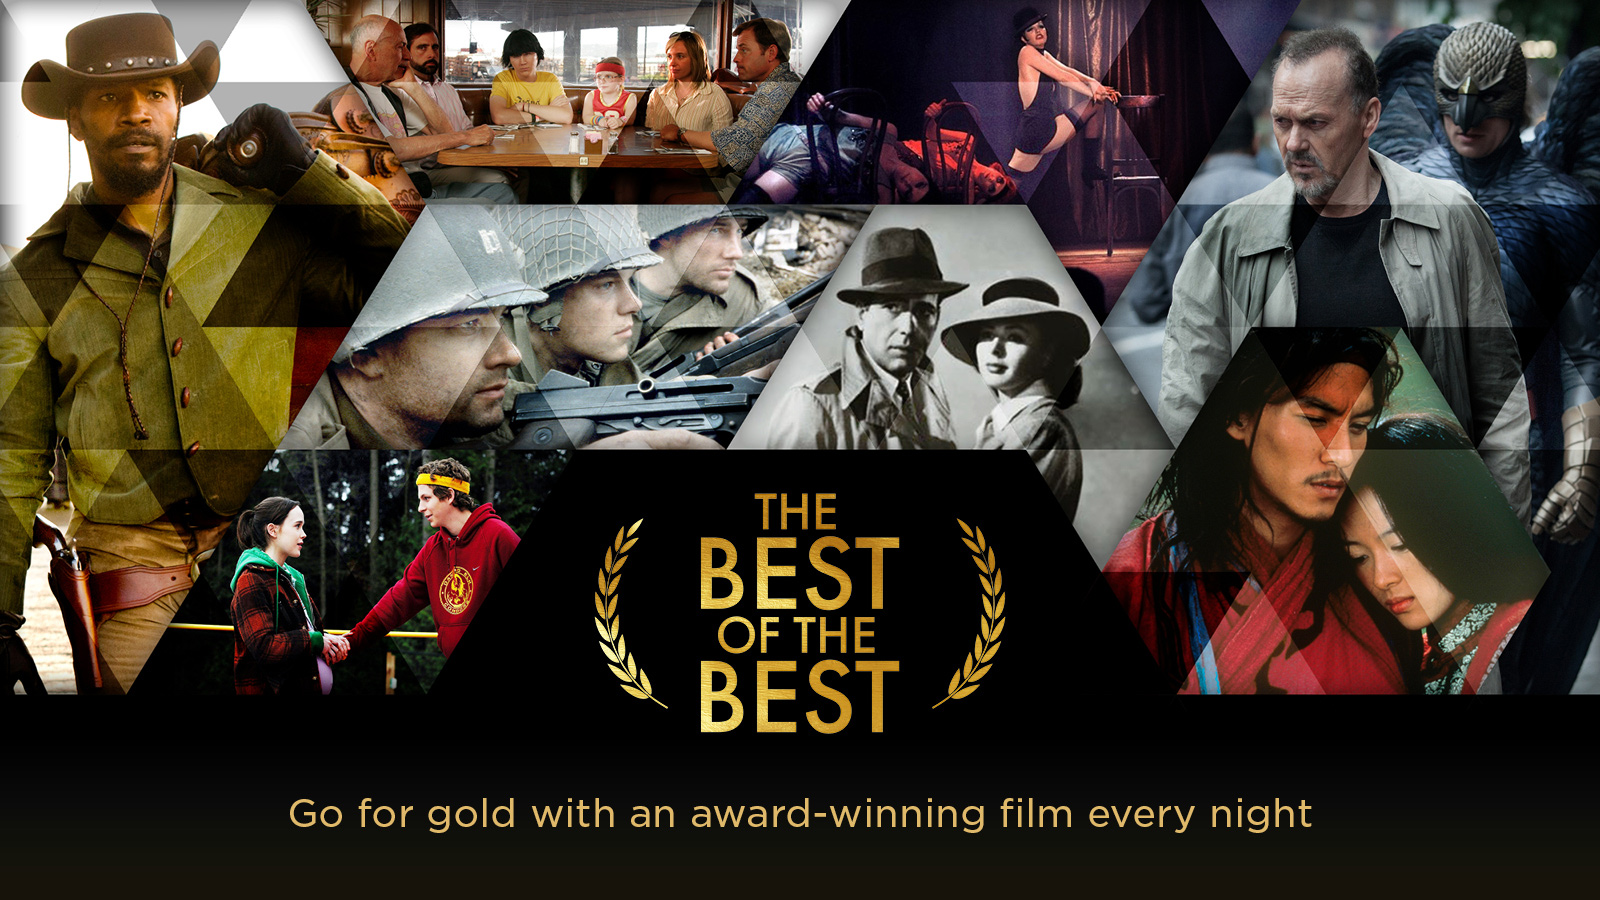 The Best of the Best – An Award-Winning Film Every Night